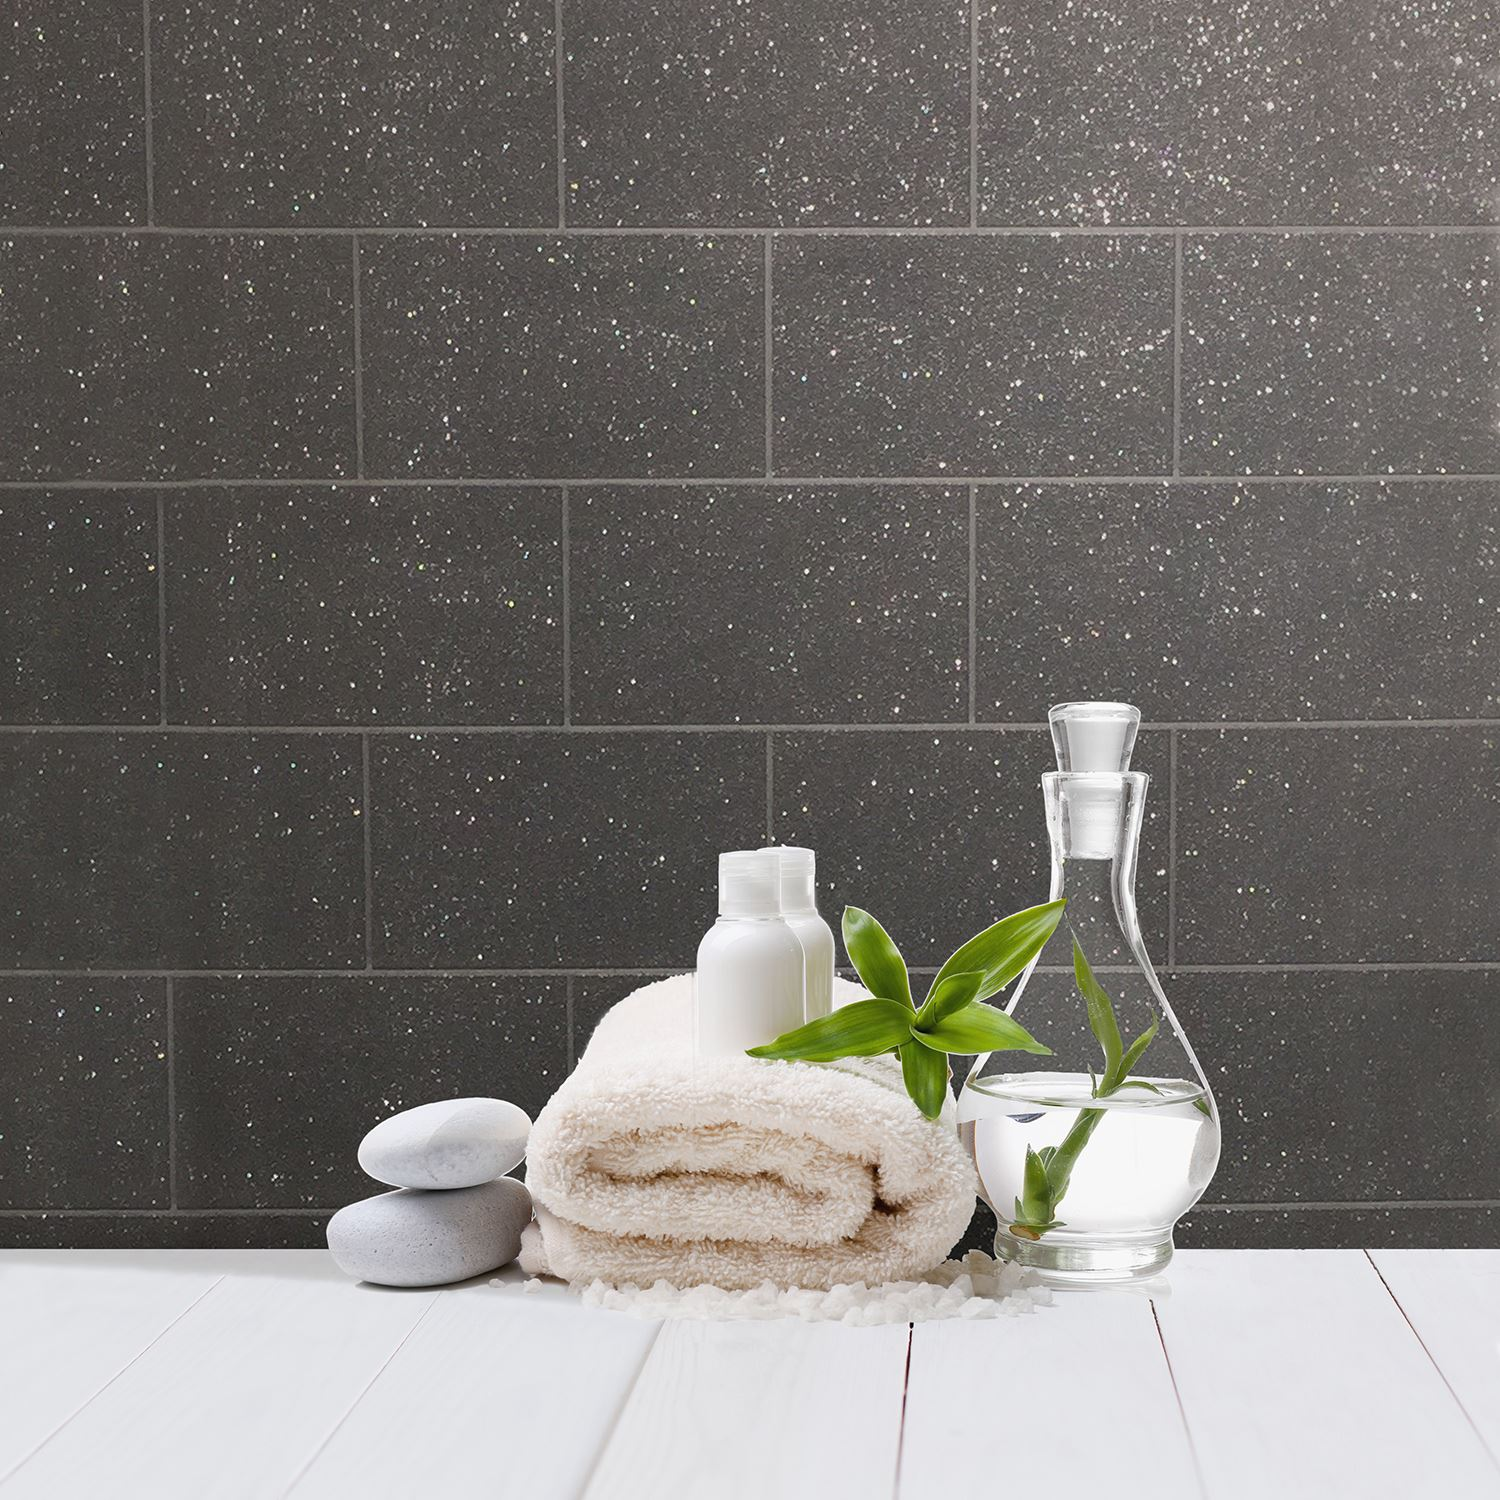 Details About Crown London Tile Glitter Wallpaper Black M1055 Bathroom